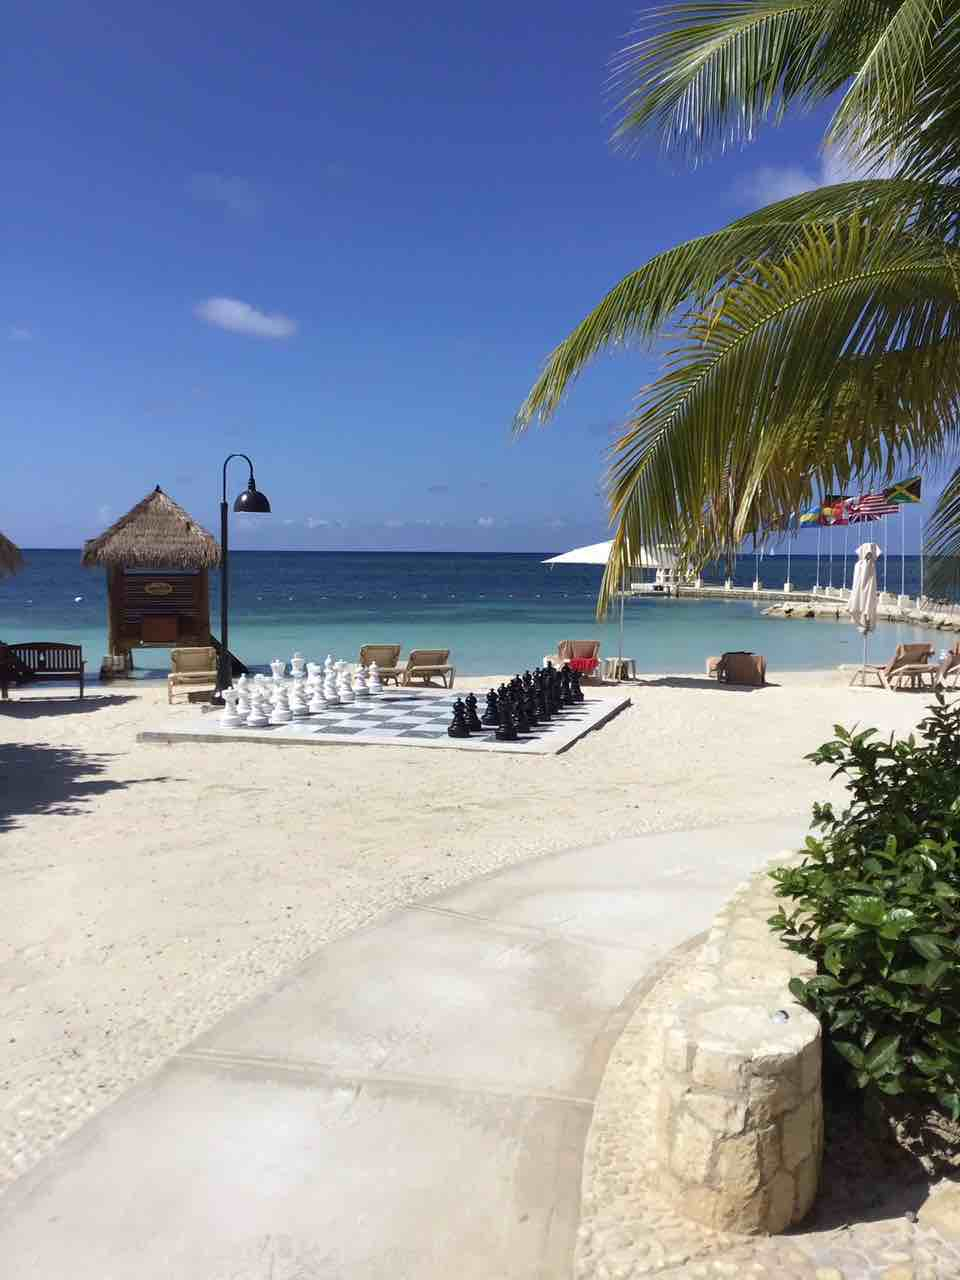 A Safer Jamaica Travel Destination: Where it stands?